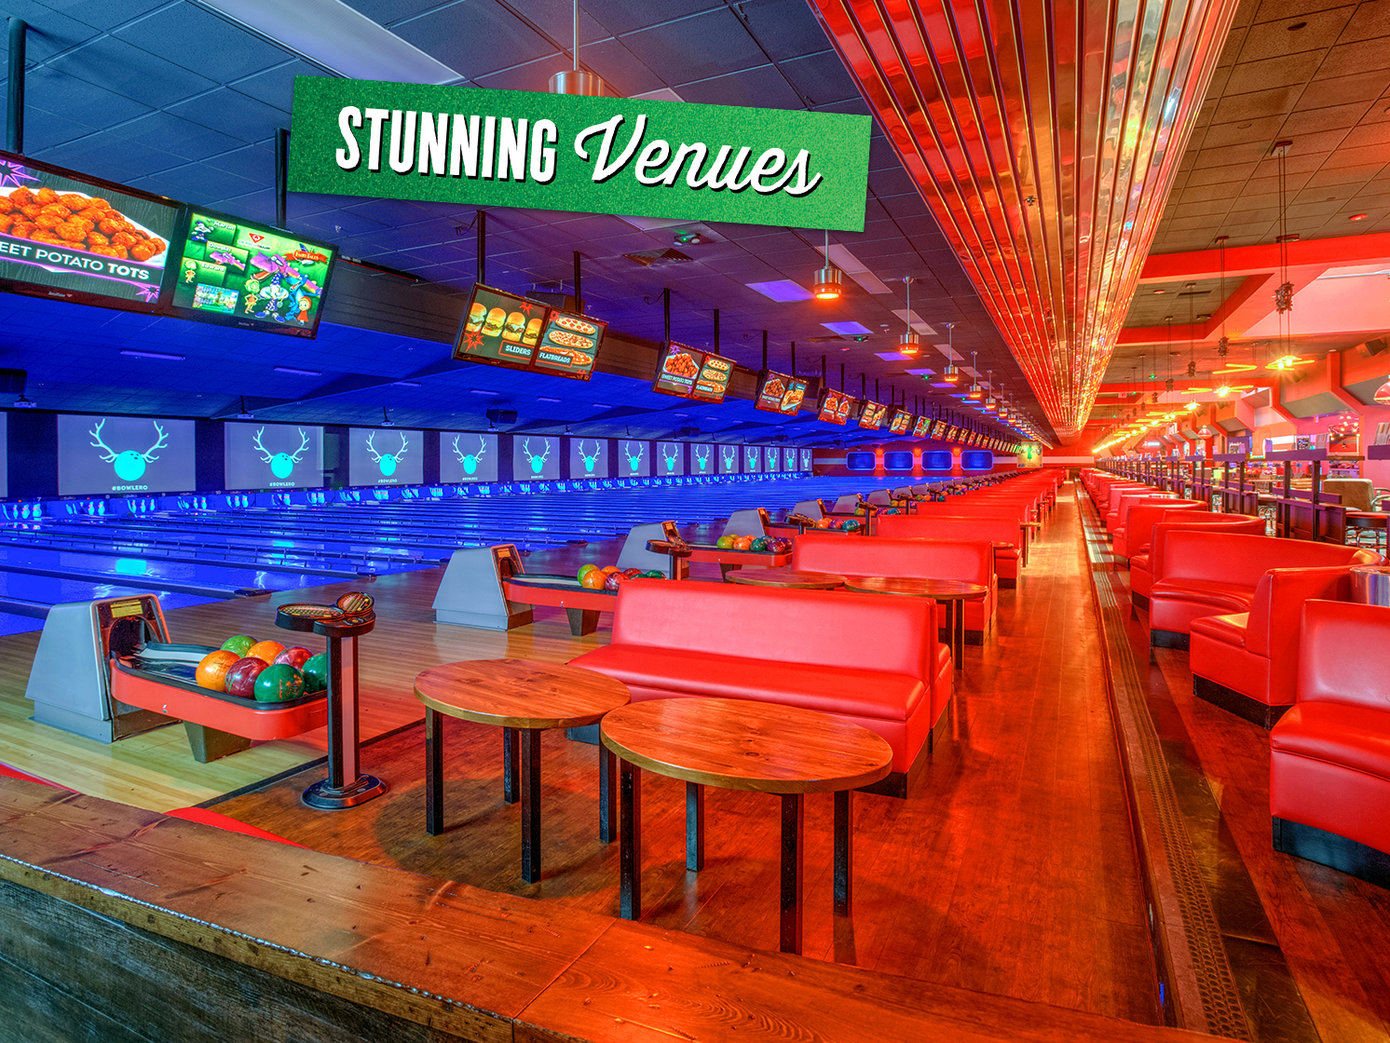 Bright picture of a bowling alley's seating area and lanes. On top it says 'Stunning venues' on green foil